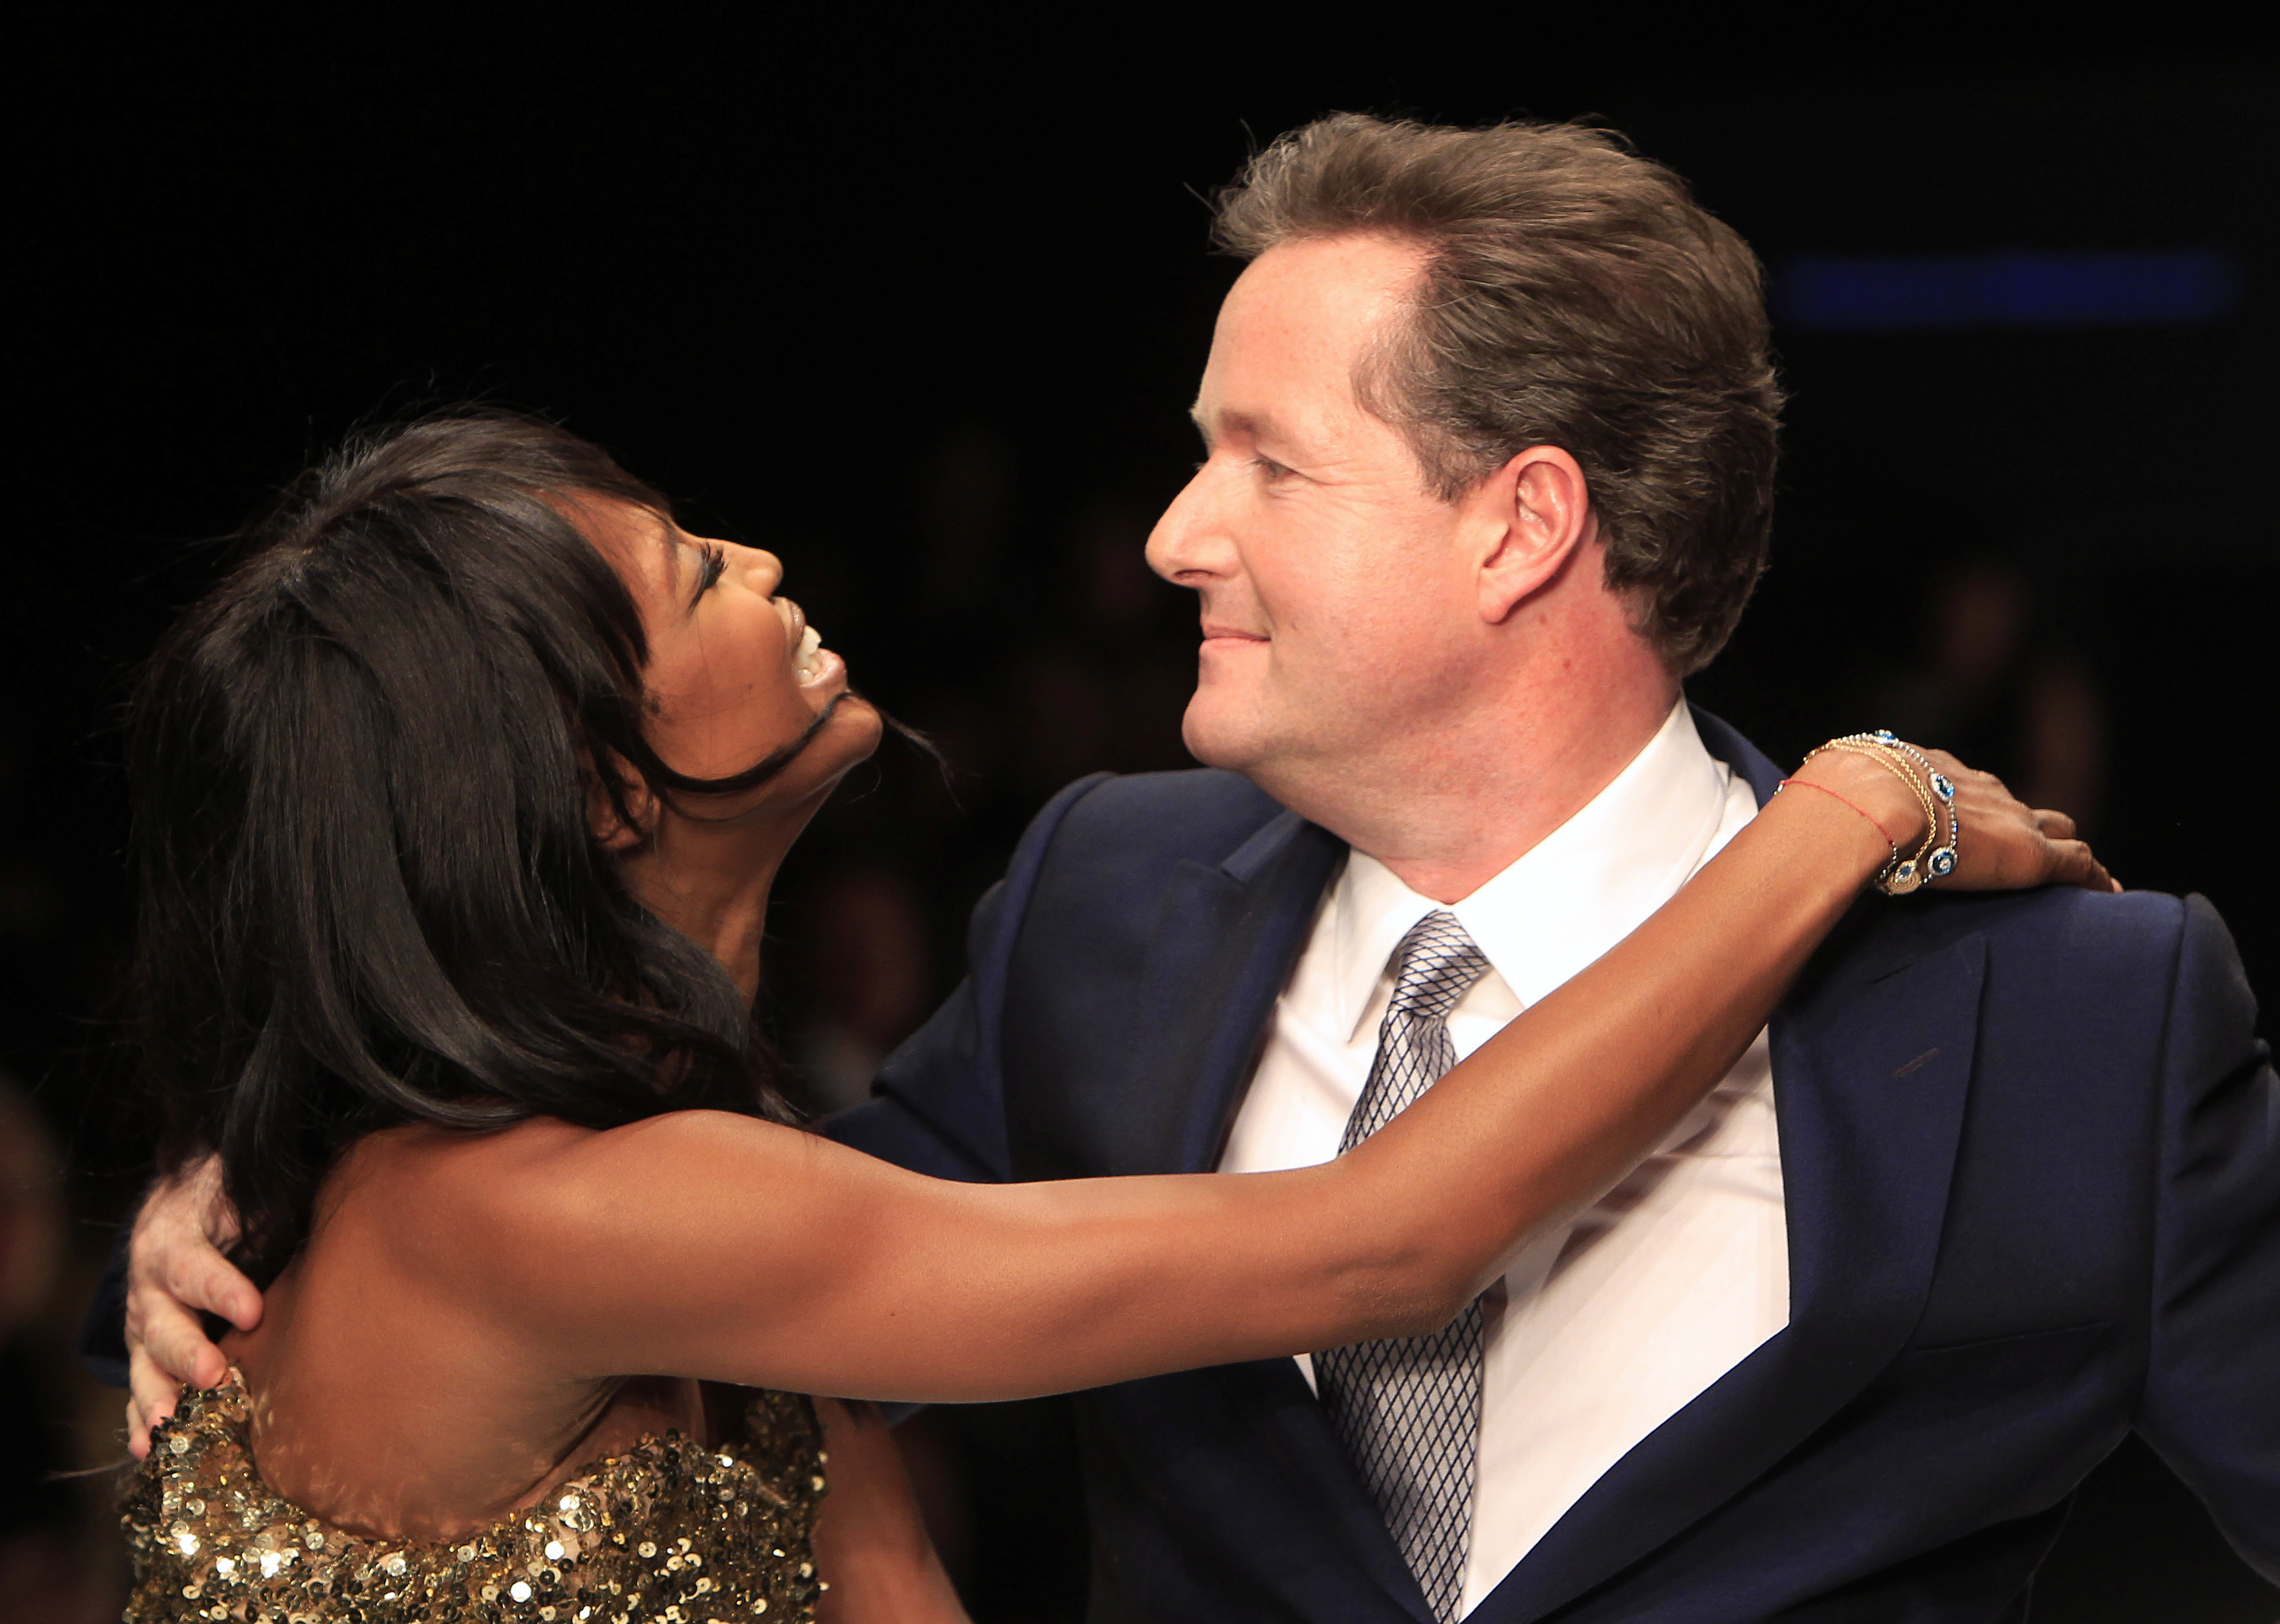 Model Naomi Campbell (L) walks down the catwalk with British television personality Piers Morgan during the Fashion For Relief Haiti fashion show and auction in London, February 18, 2010. REUTERS/Suzanne Plunkett (BRITAIN - Tags: FASHION)